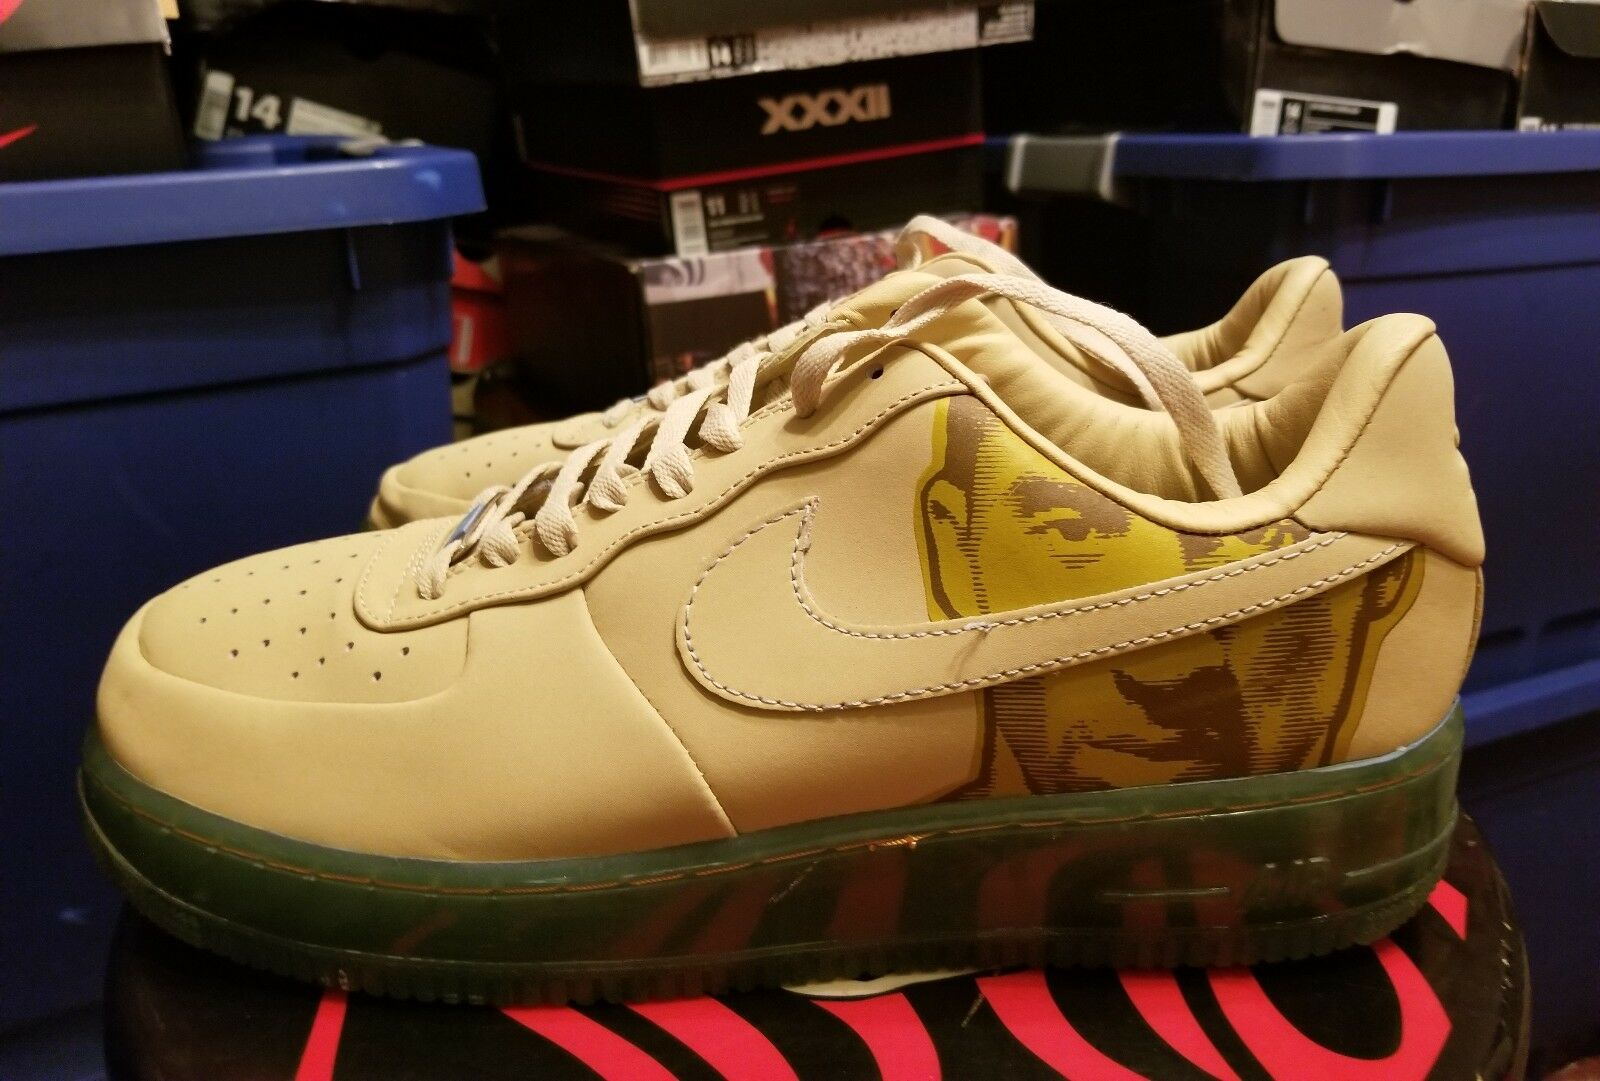 2018 Nike Air Force 1 Supreme Kobe Price reduction New shoes for men and women, limited time discount